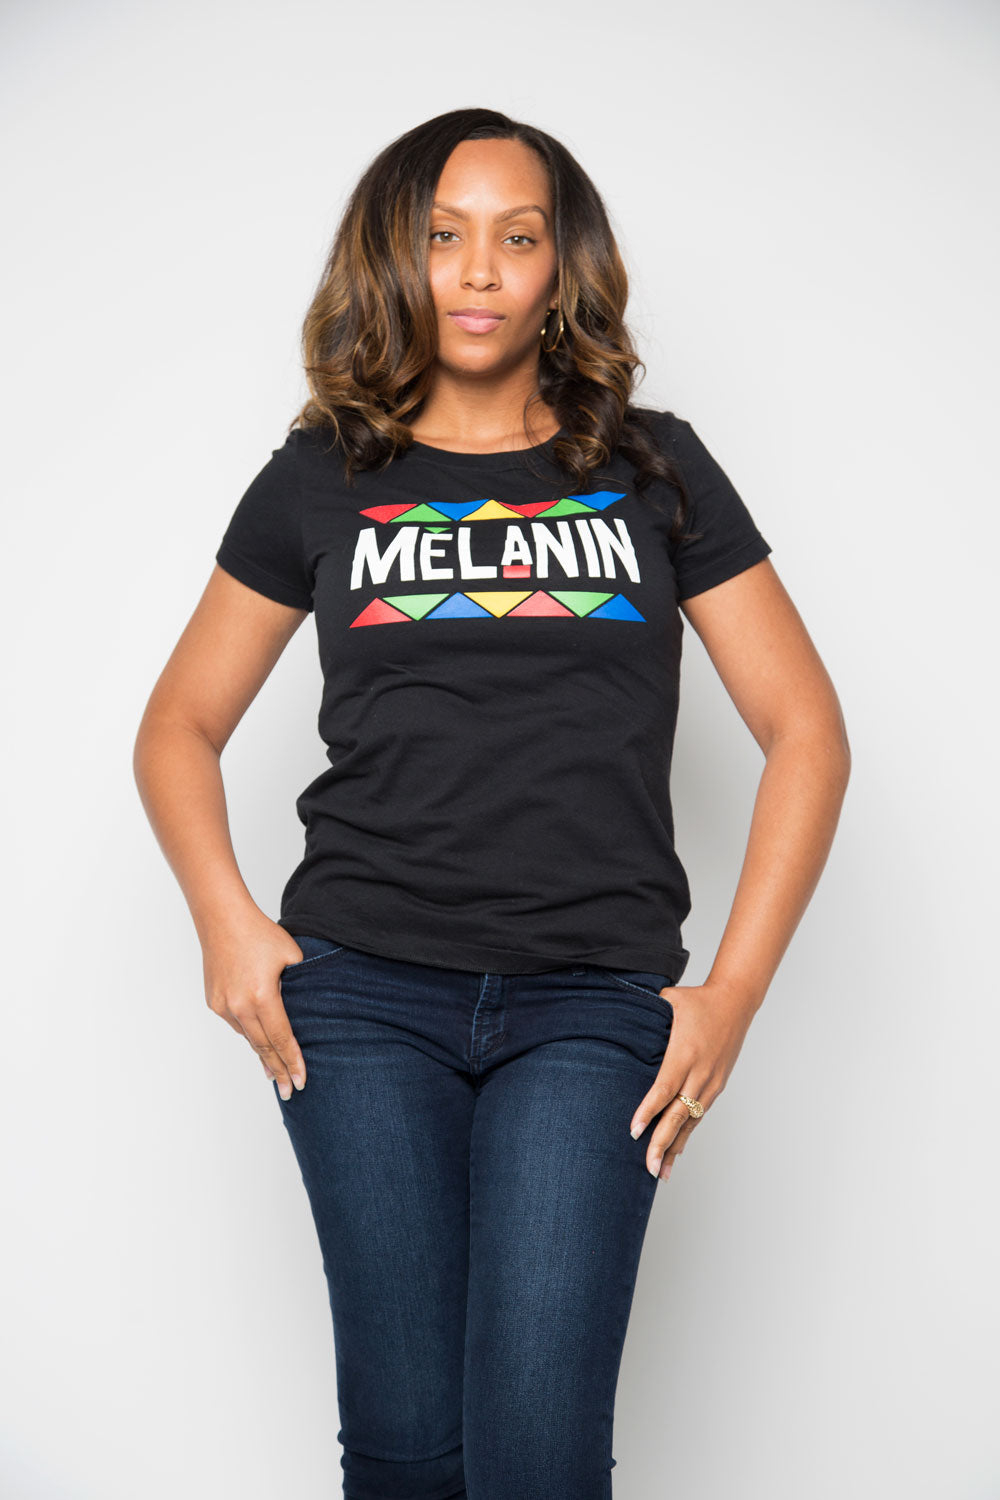 Melanin Shirt in Black - Trunk Series